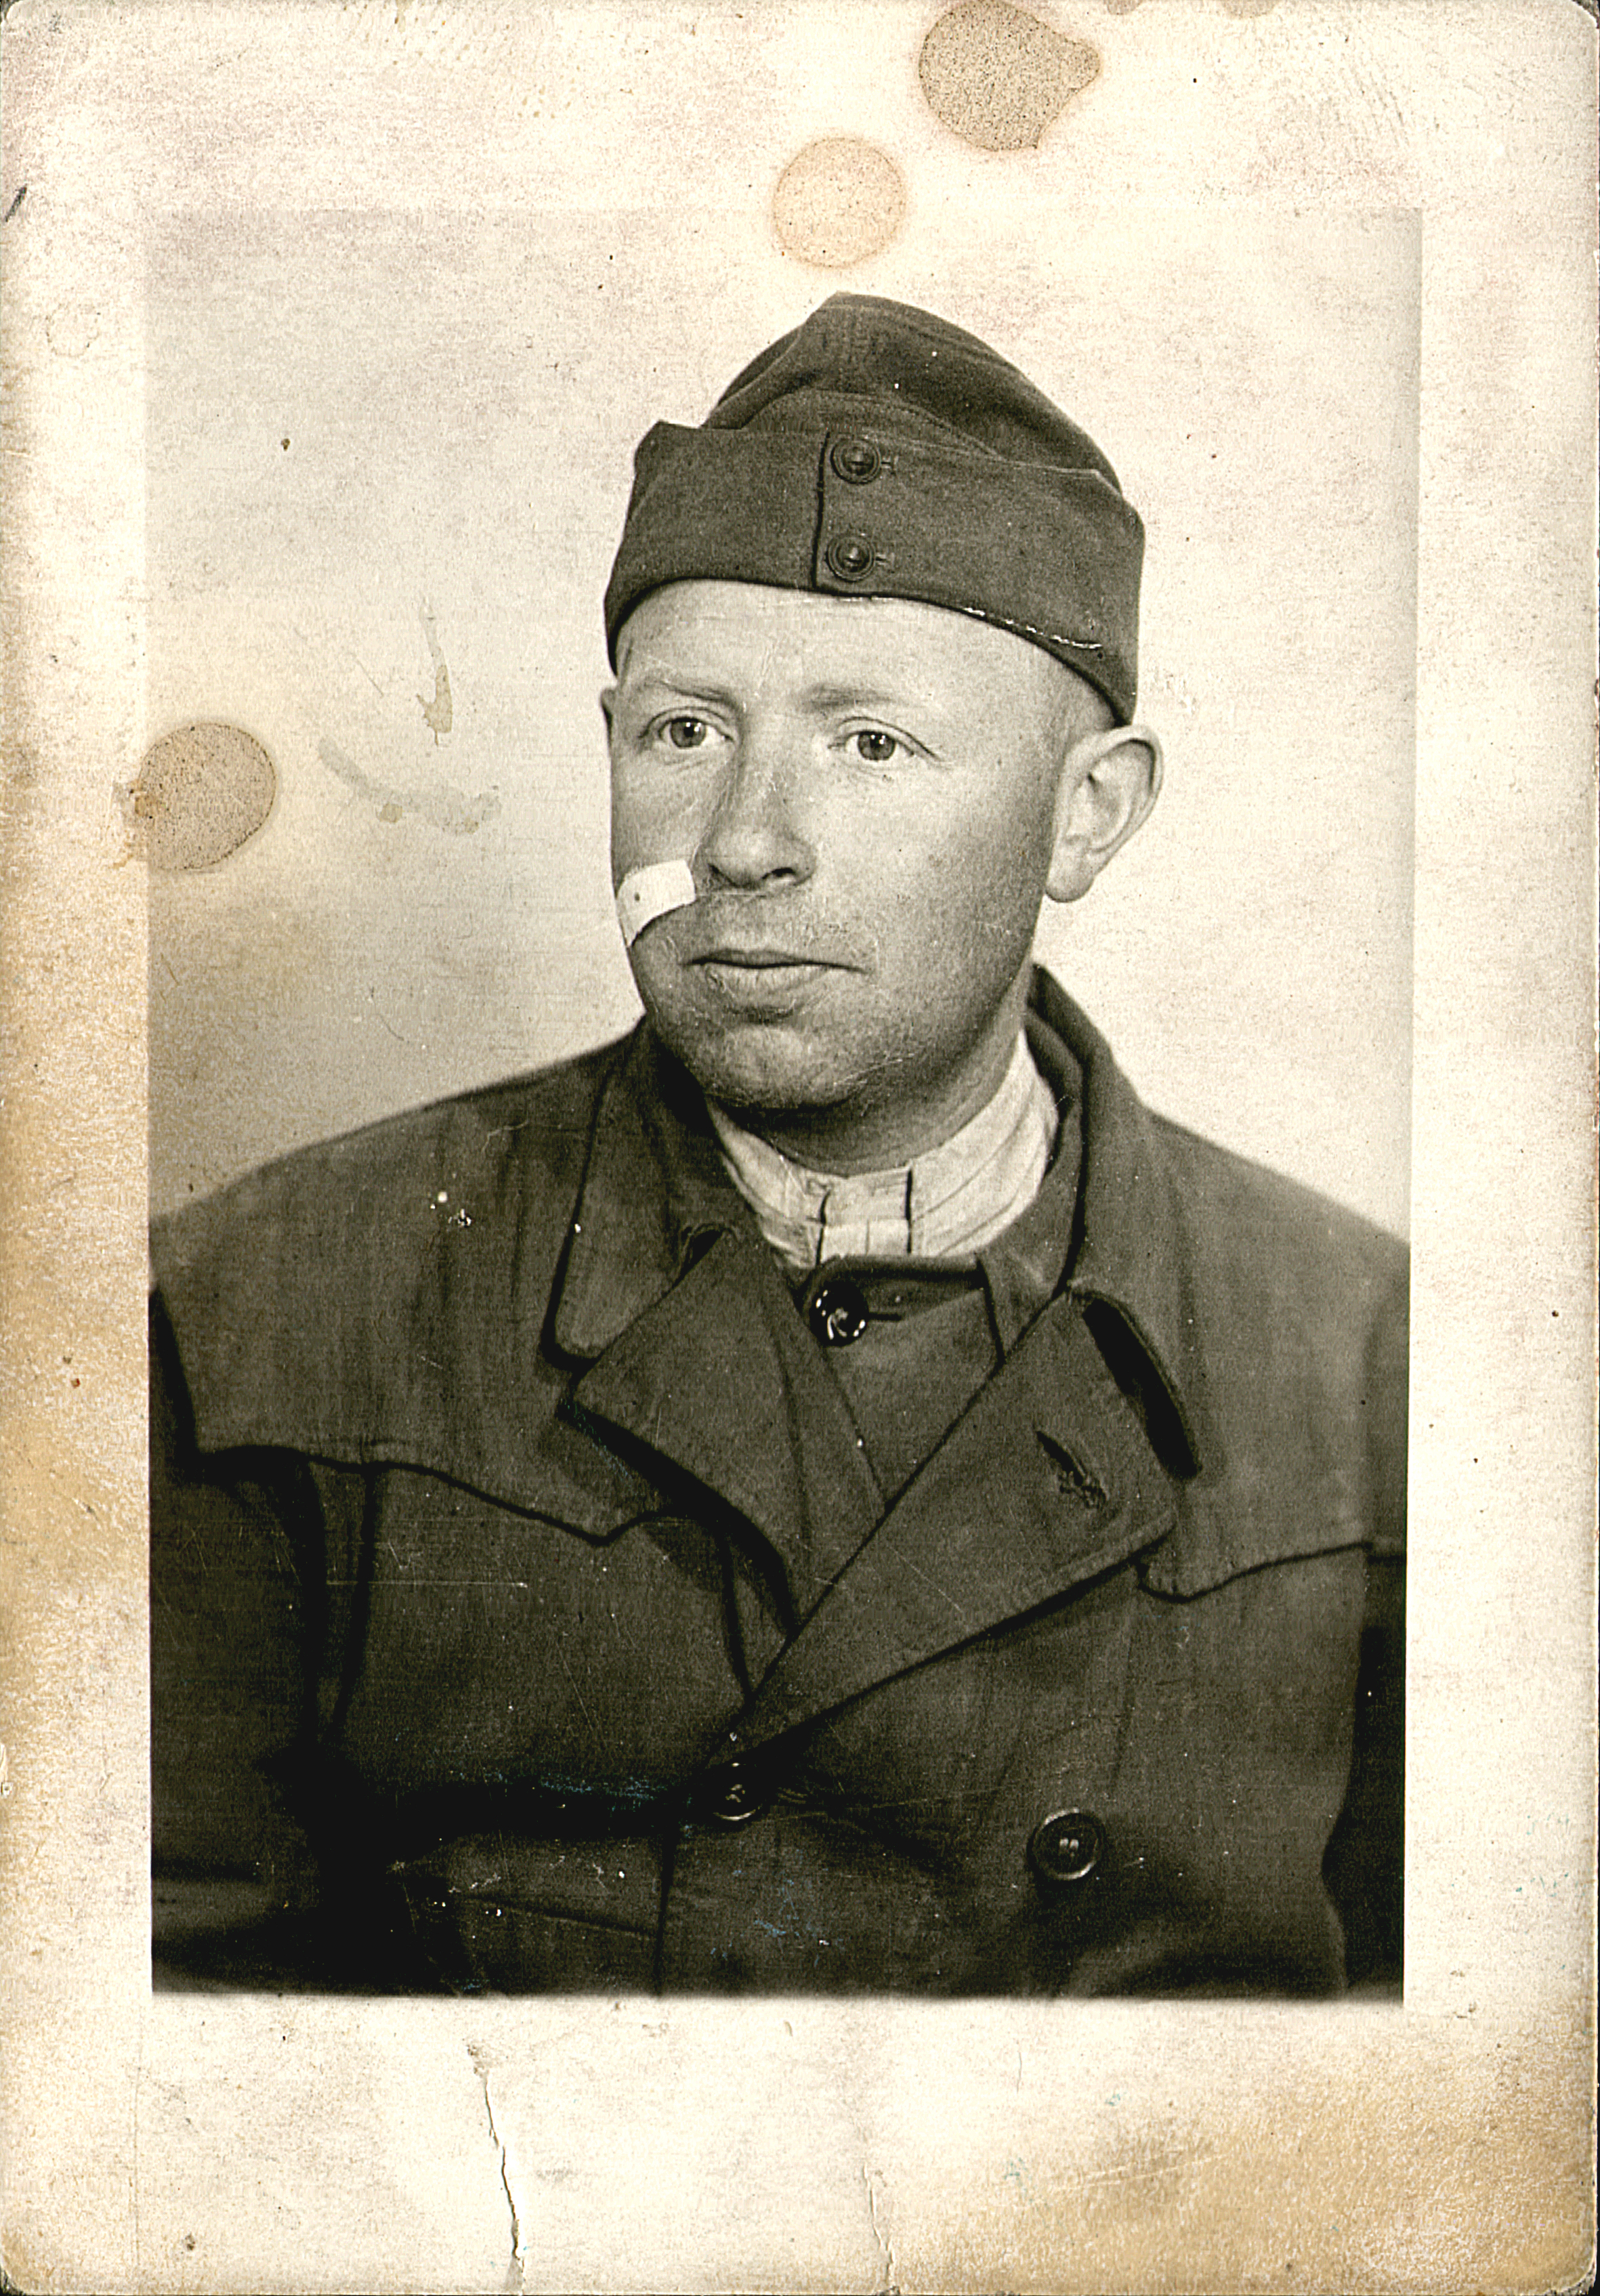 Erno Szabados in  forced labor work service